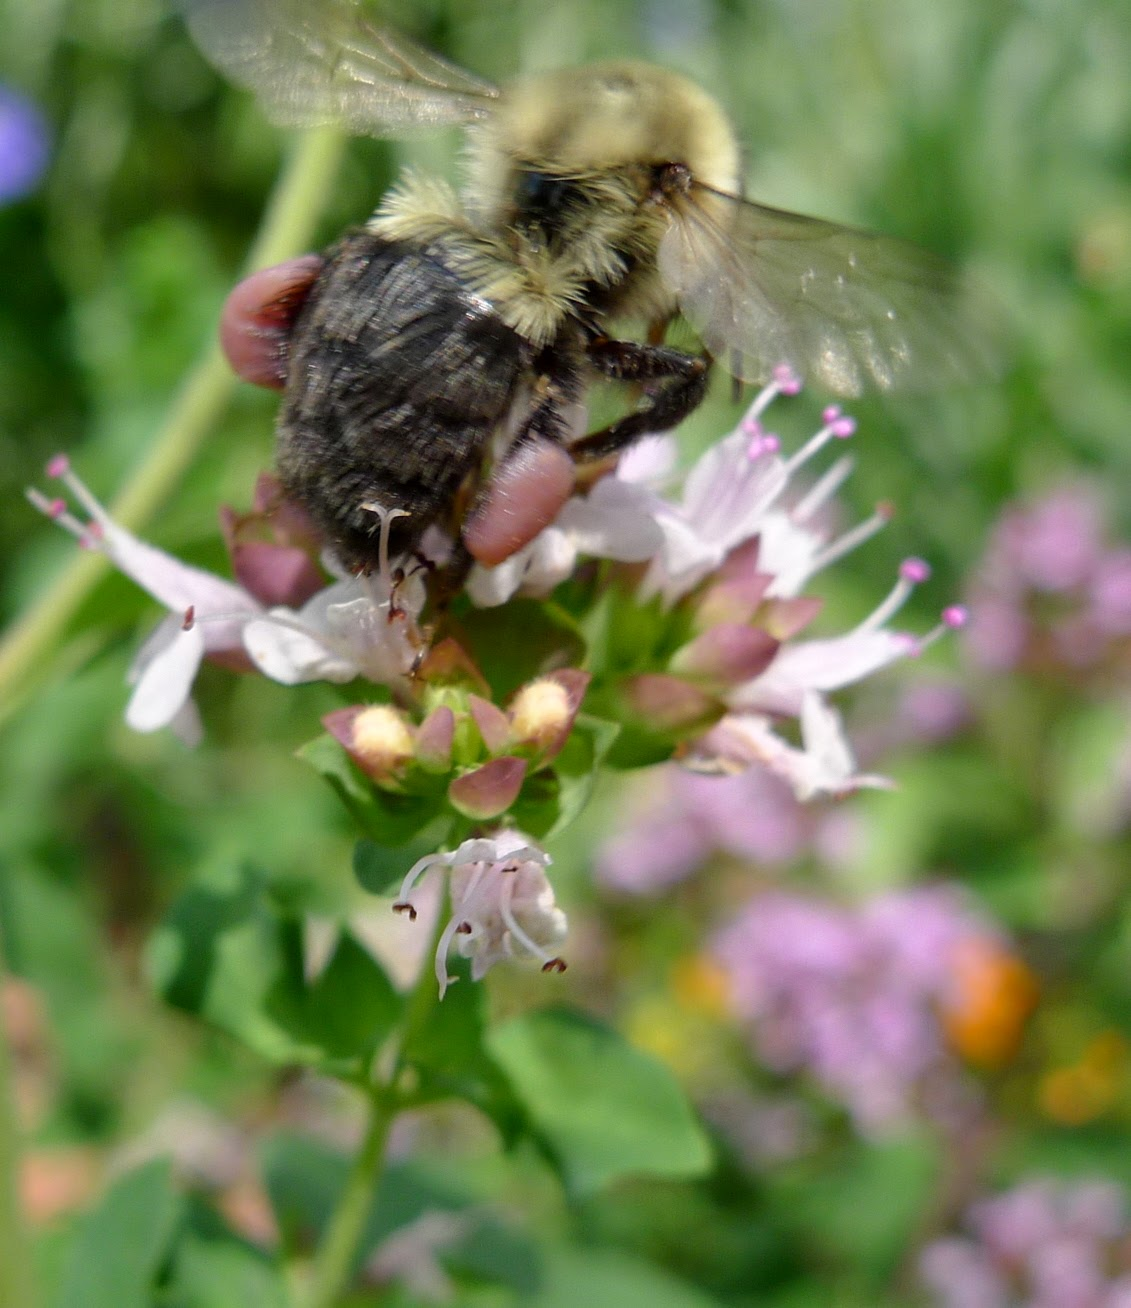 Bumble Bee on oregano, pollinators, urban farming